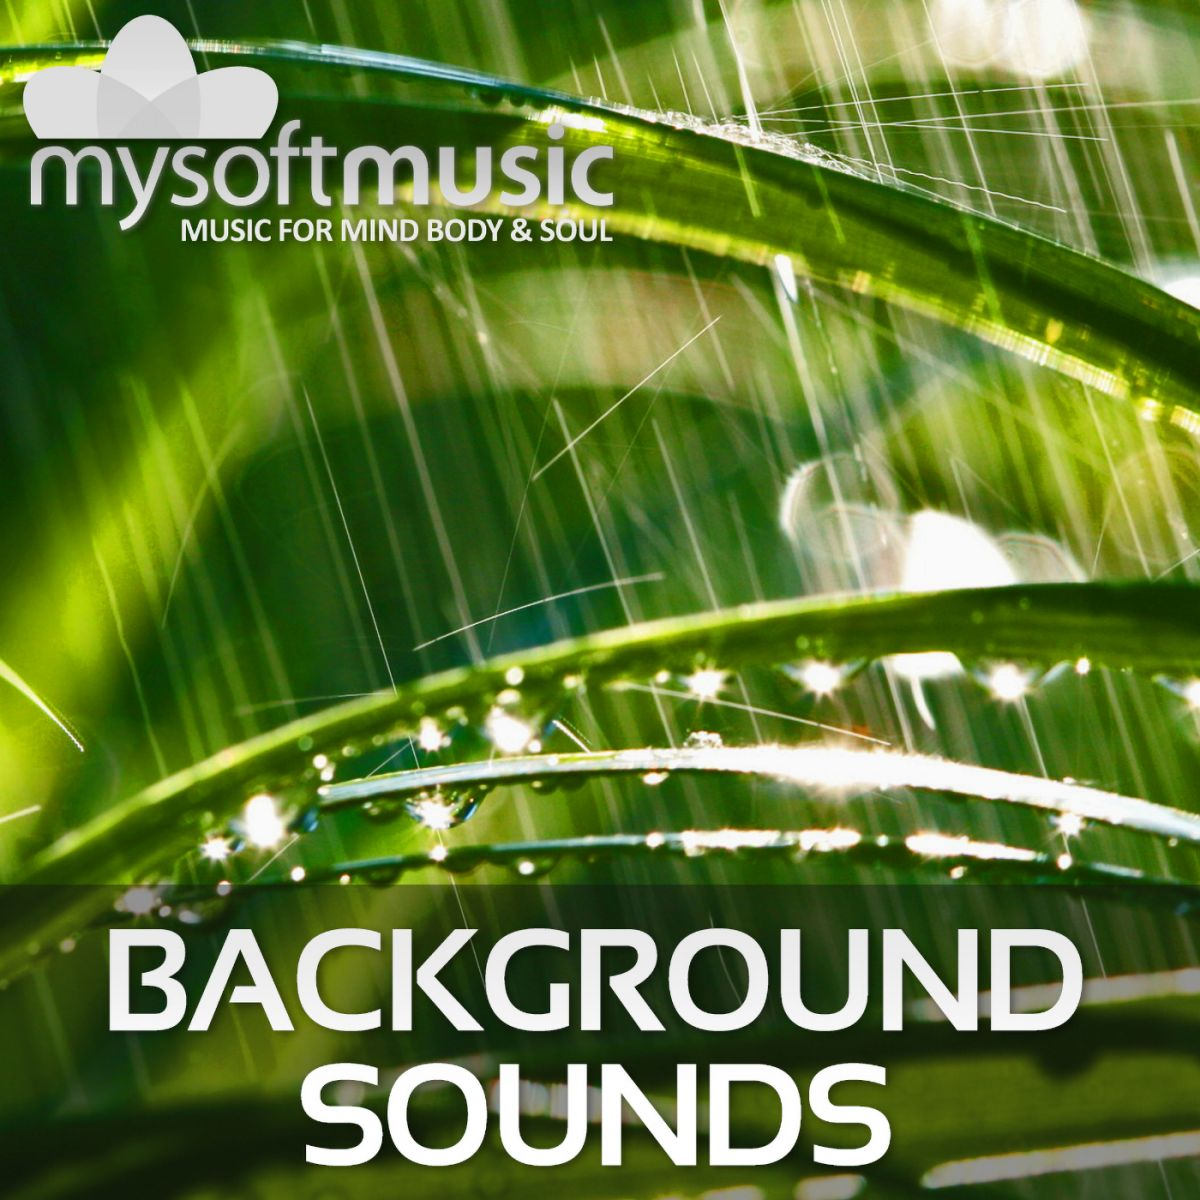 Background Sounds music mp3 | Kirk Monteux mysoftmusic